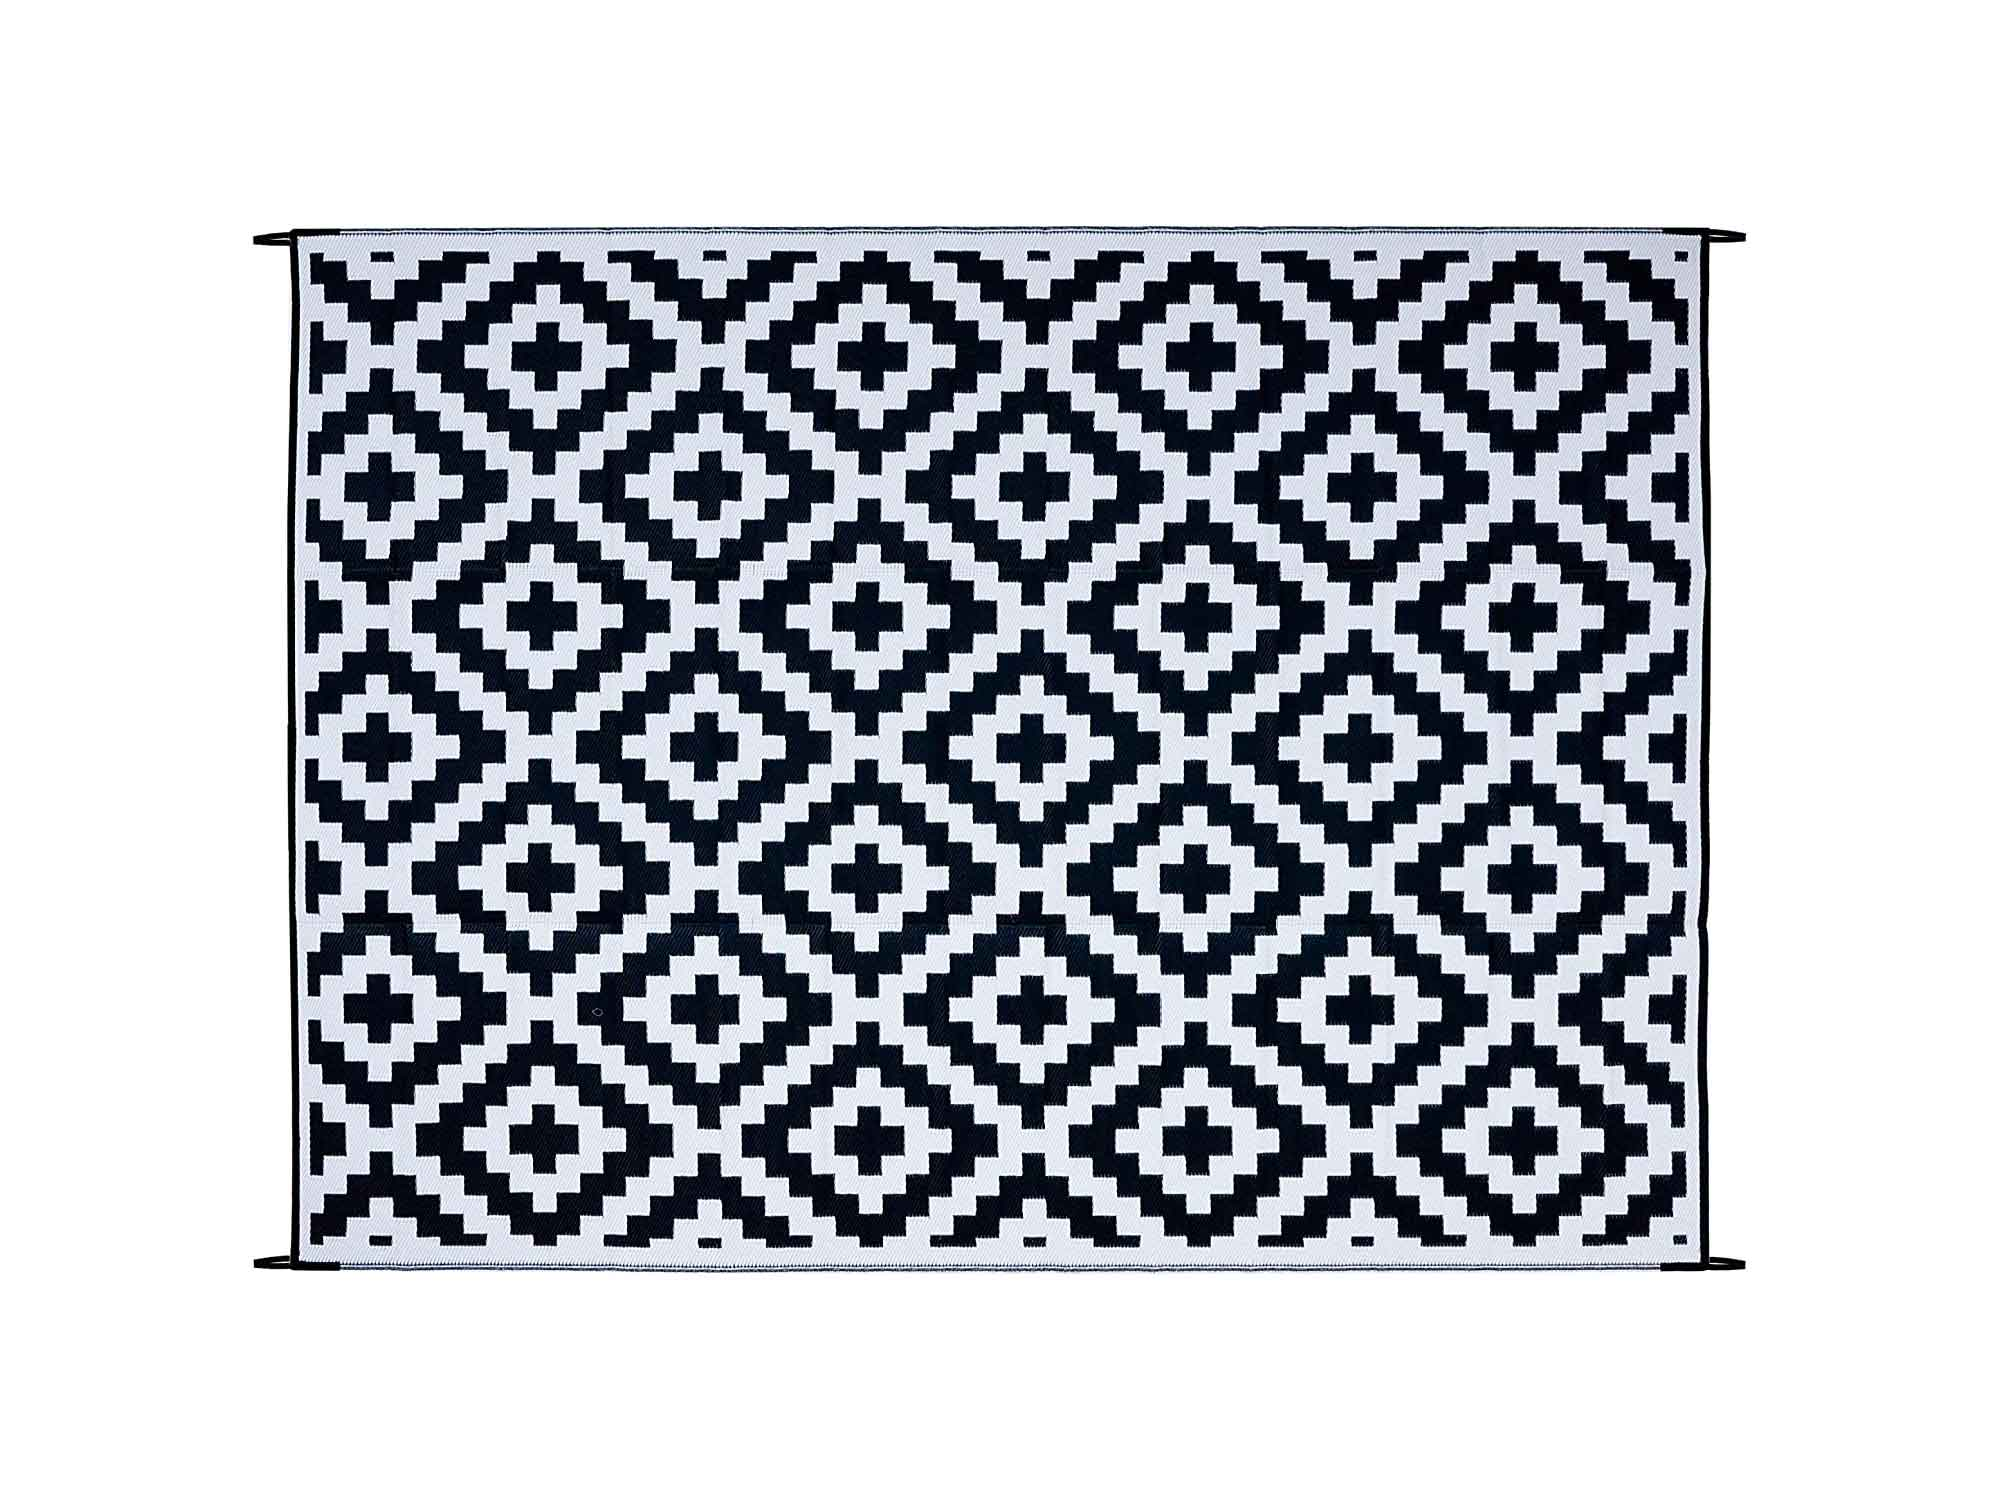 FH Home Indoor/Outdoor Recycled Plastic Floor Mat/Rug – RV Camping Rugs, Great for Beach, Camping Trips, Picnics – Lightweight - Aztec - Black/White (9 ft x 12 ft) - Foldable